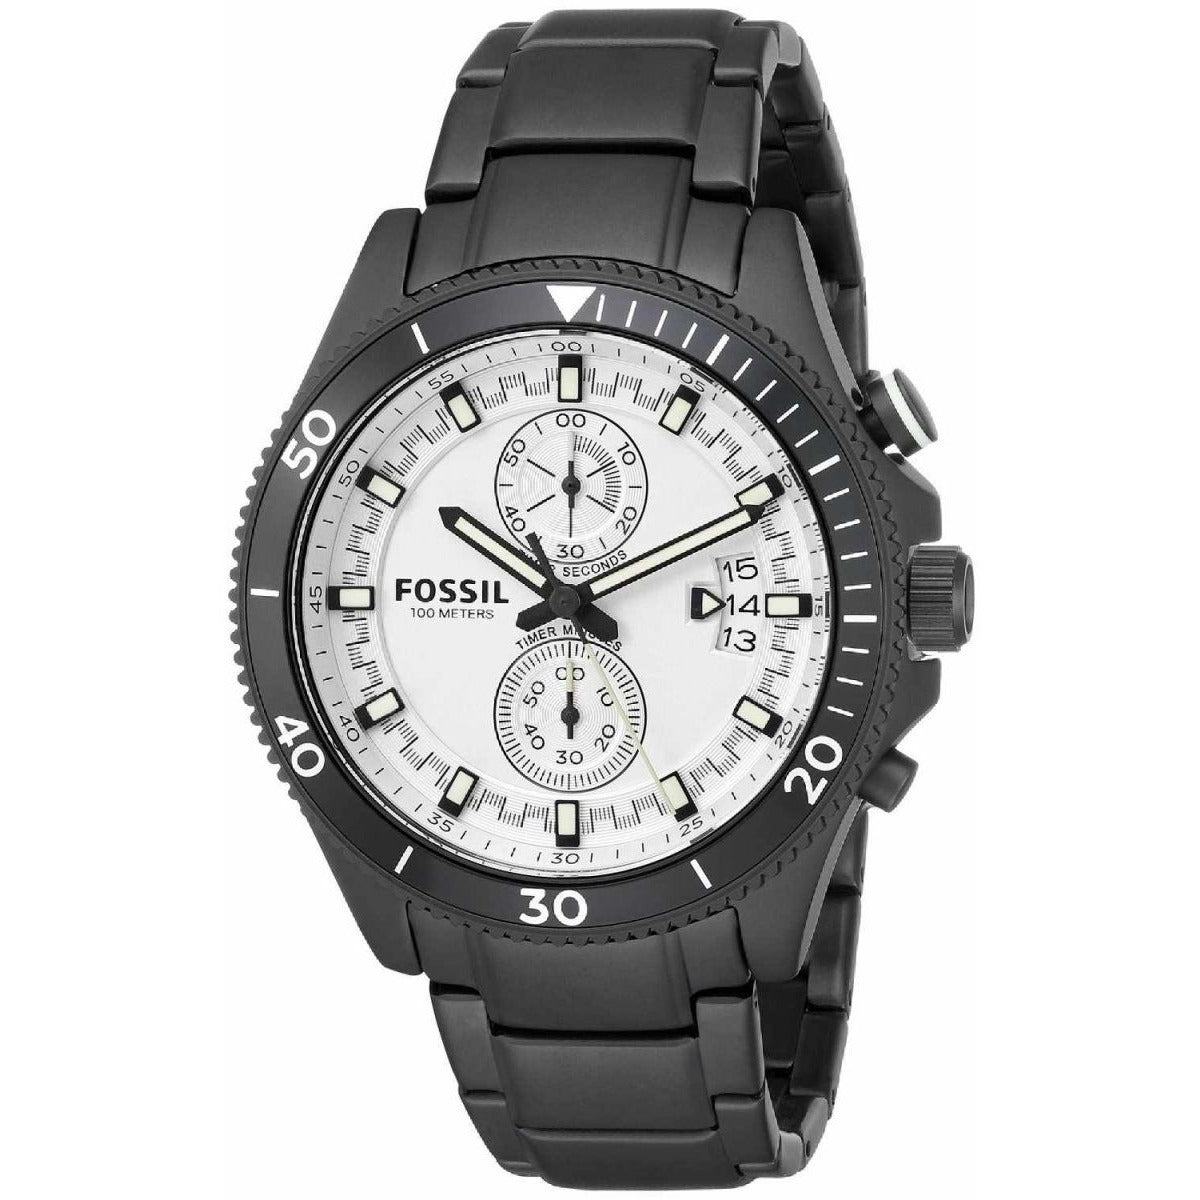 Fossil Wakefield Watch for Men Analog Stainless Steel Band - CH2999